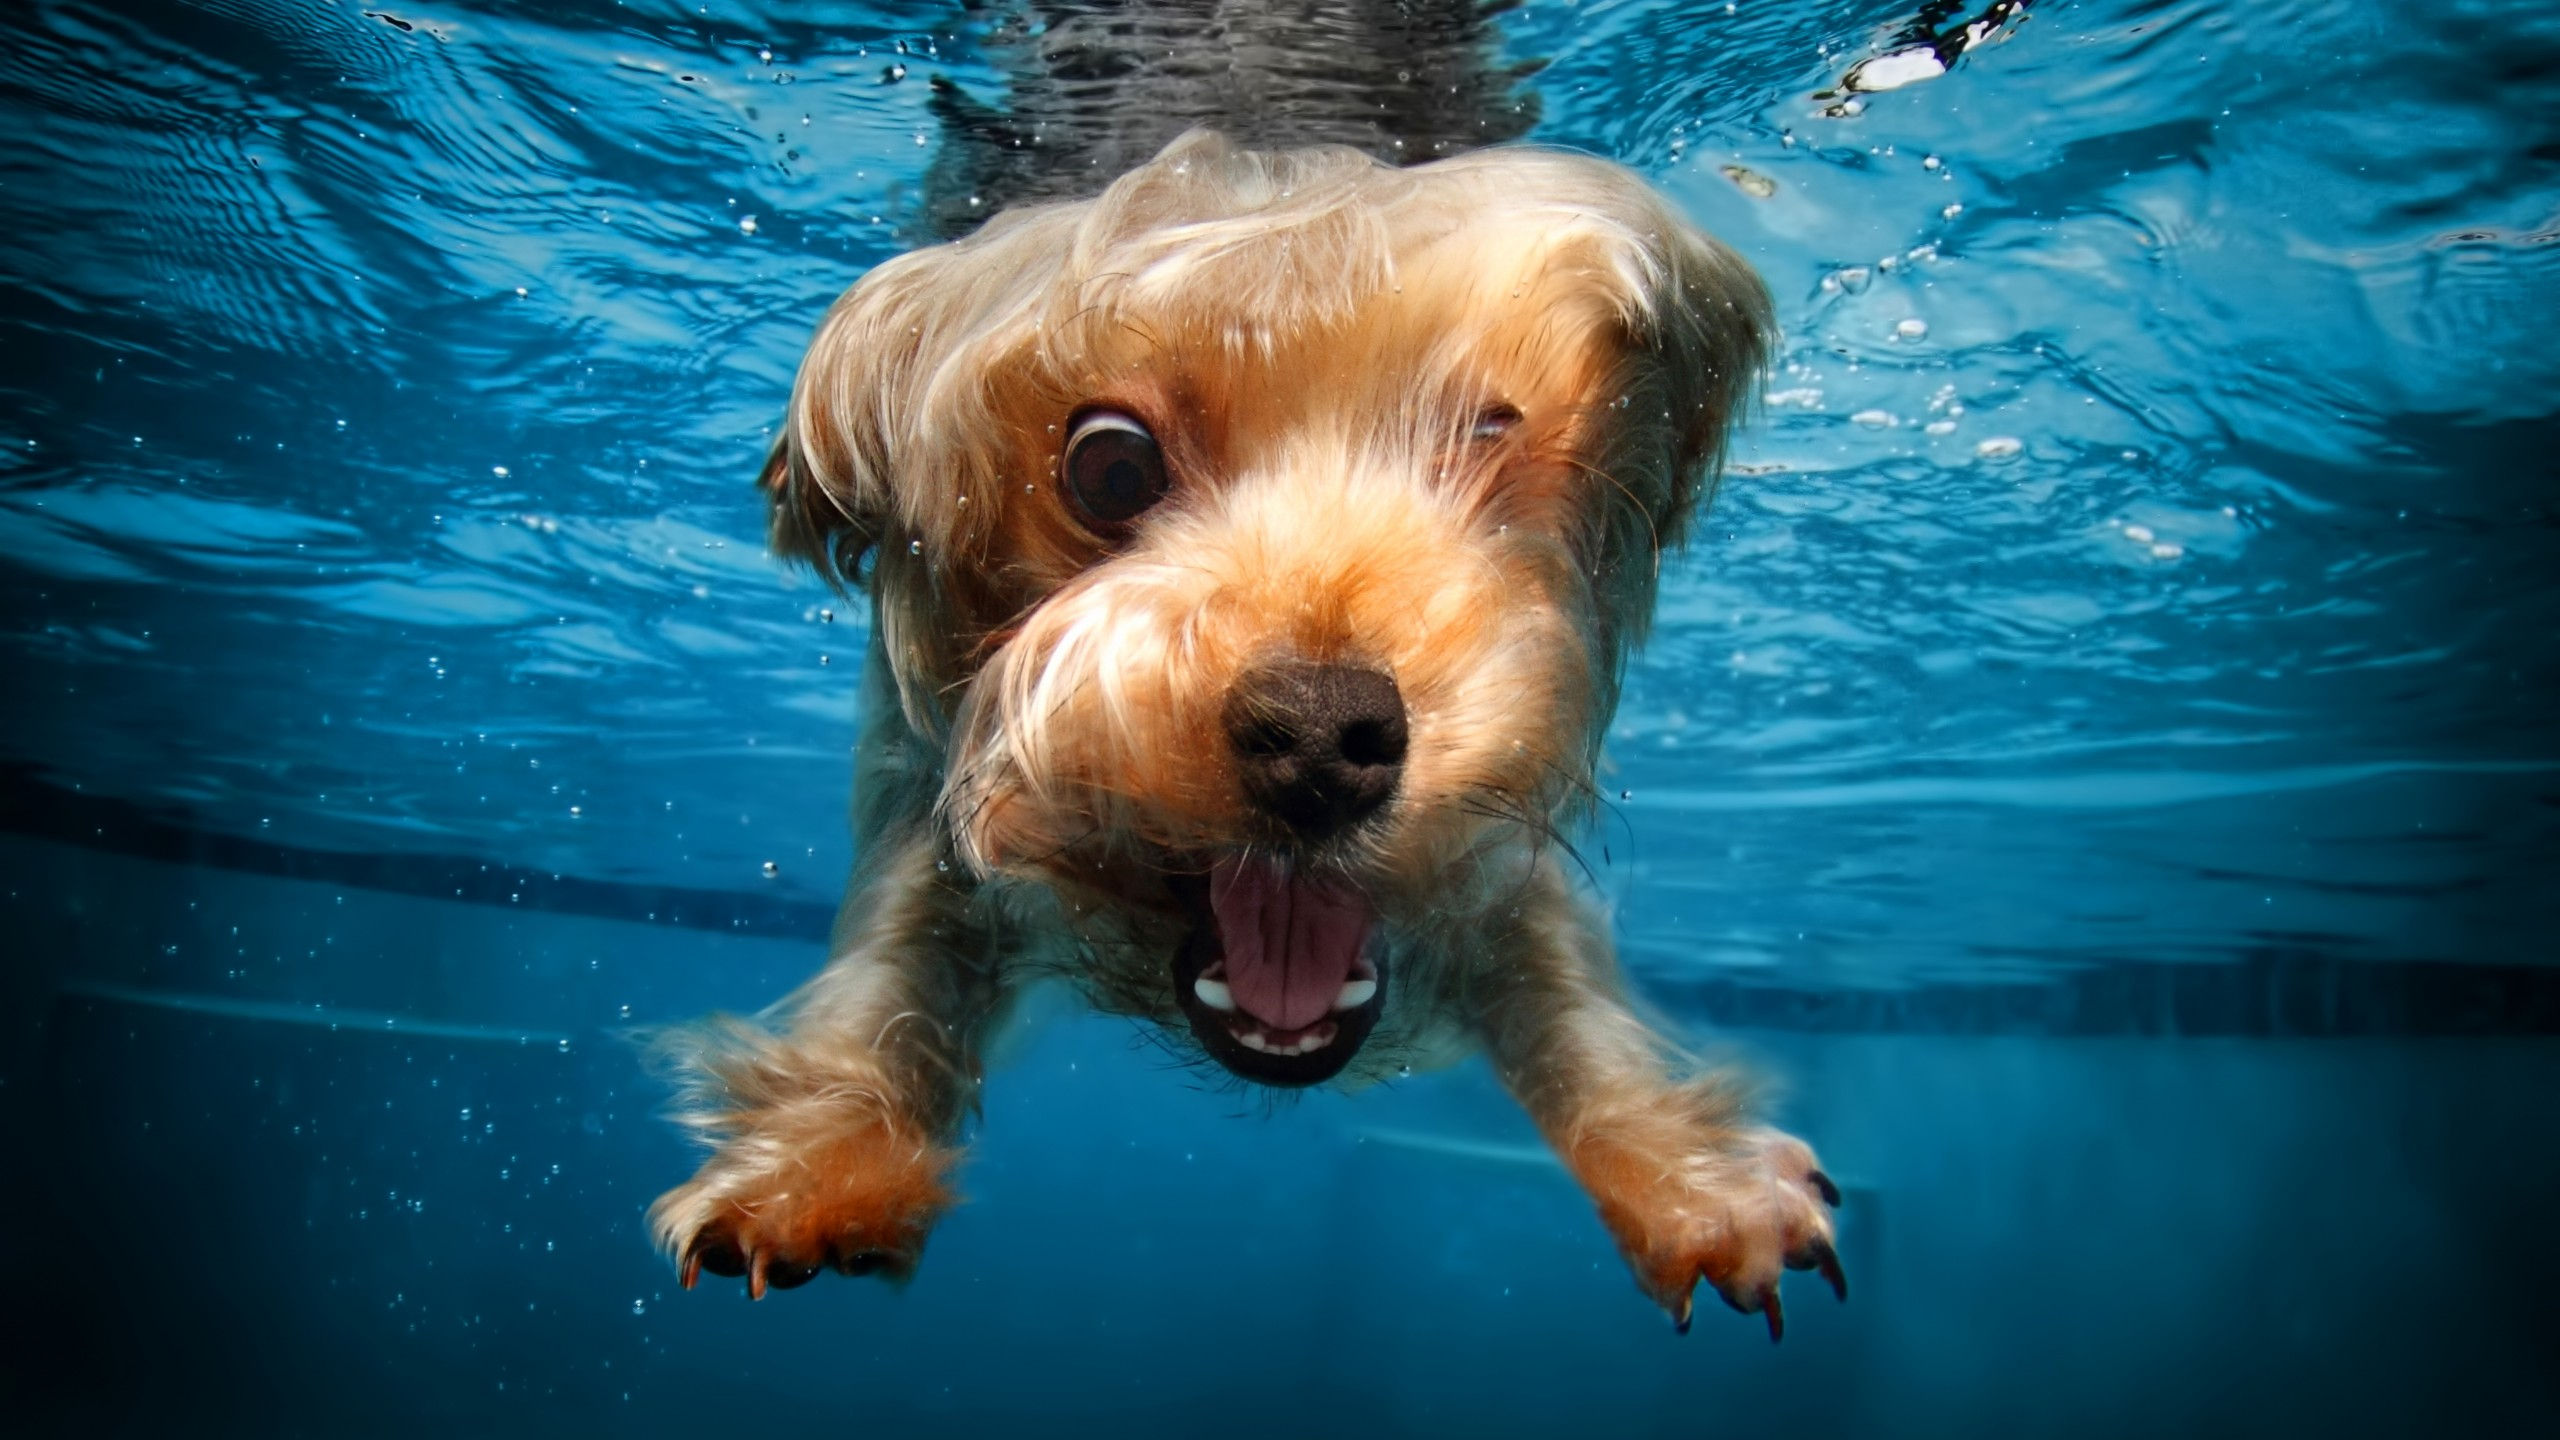 Cute Silly Wallpapers Wallpaper Terrier Dog Underwater Cute Animals Funny